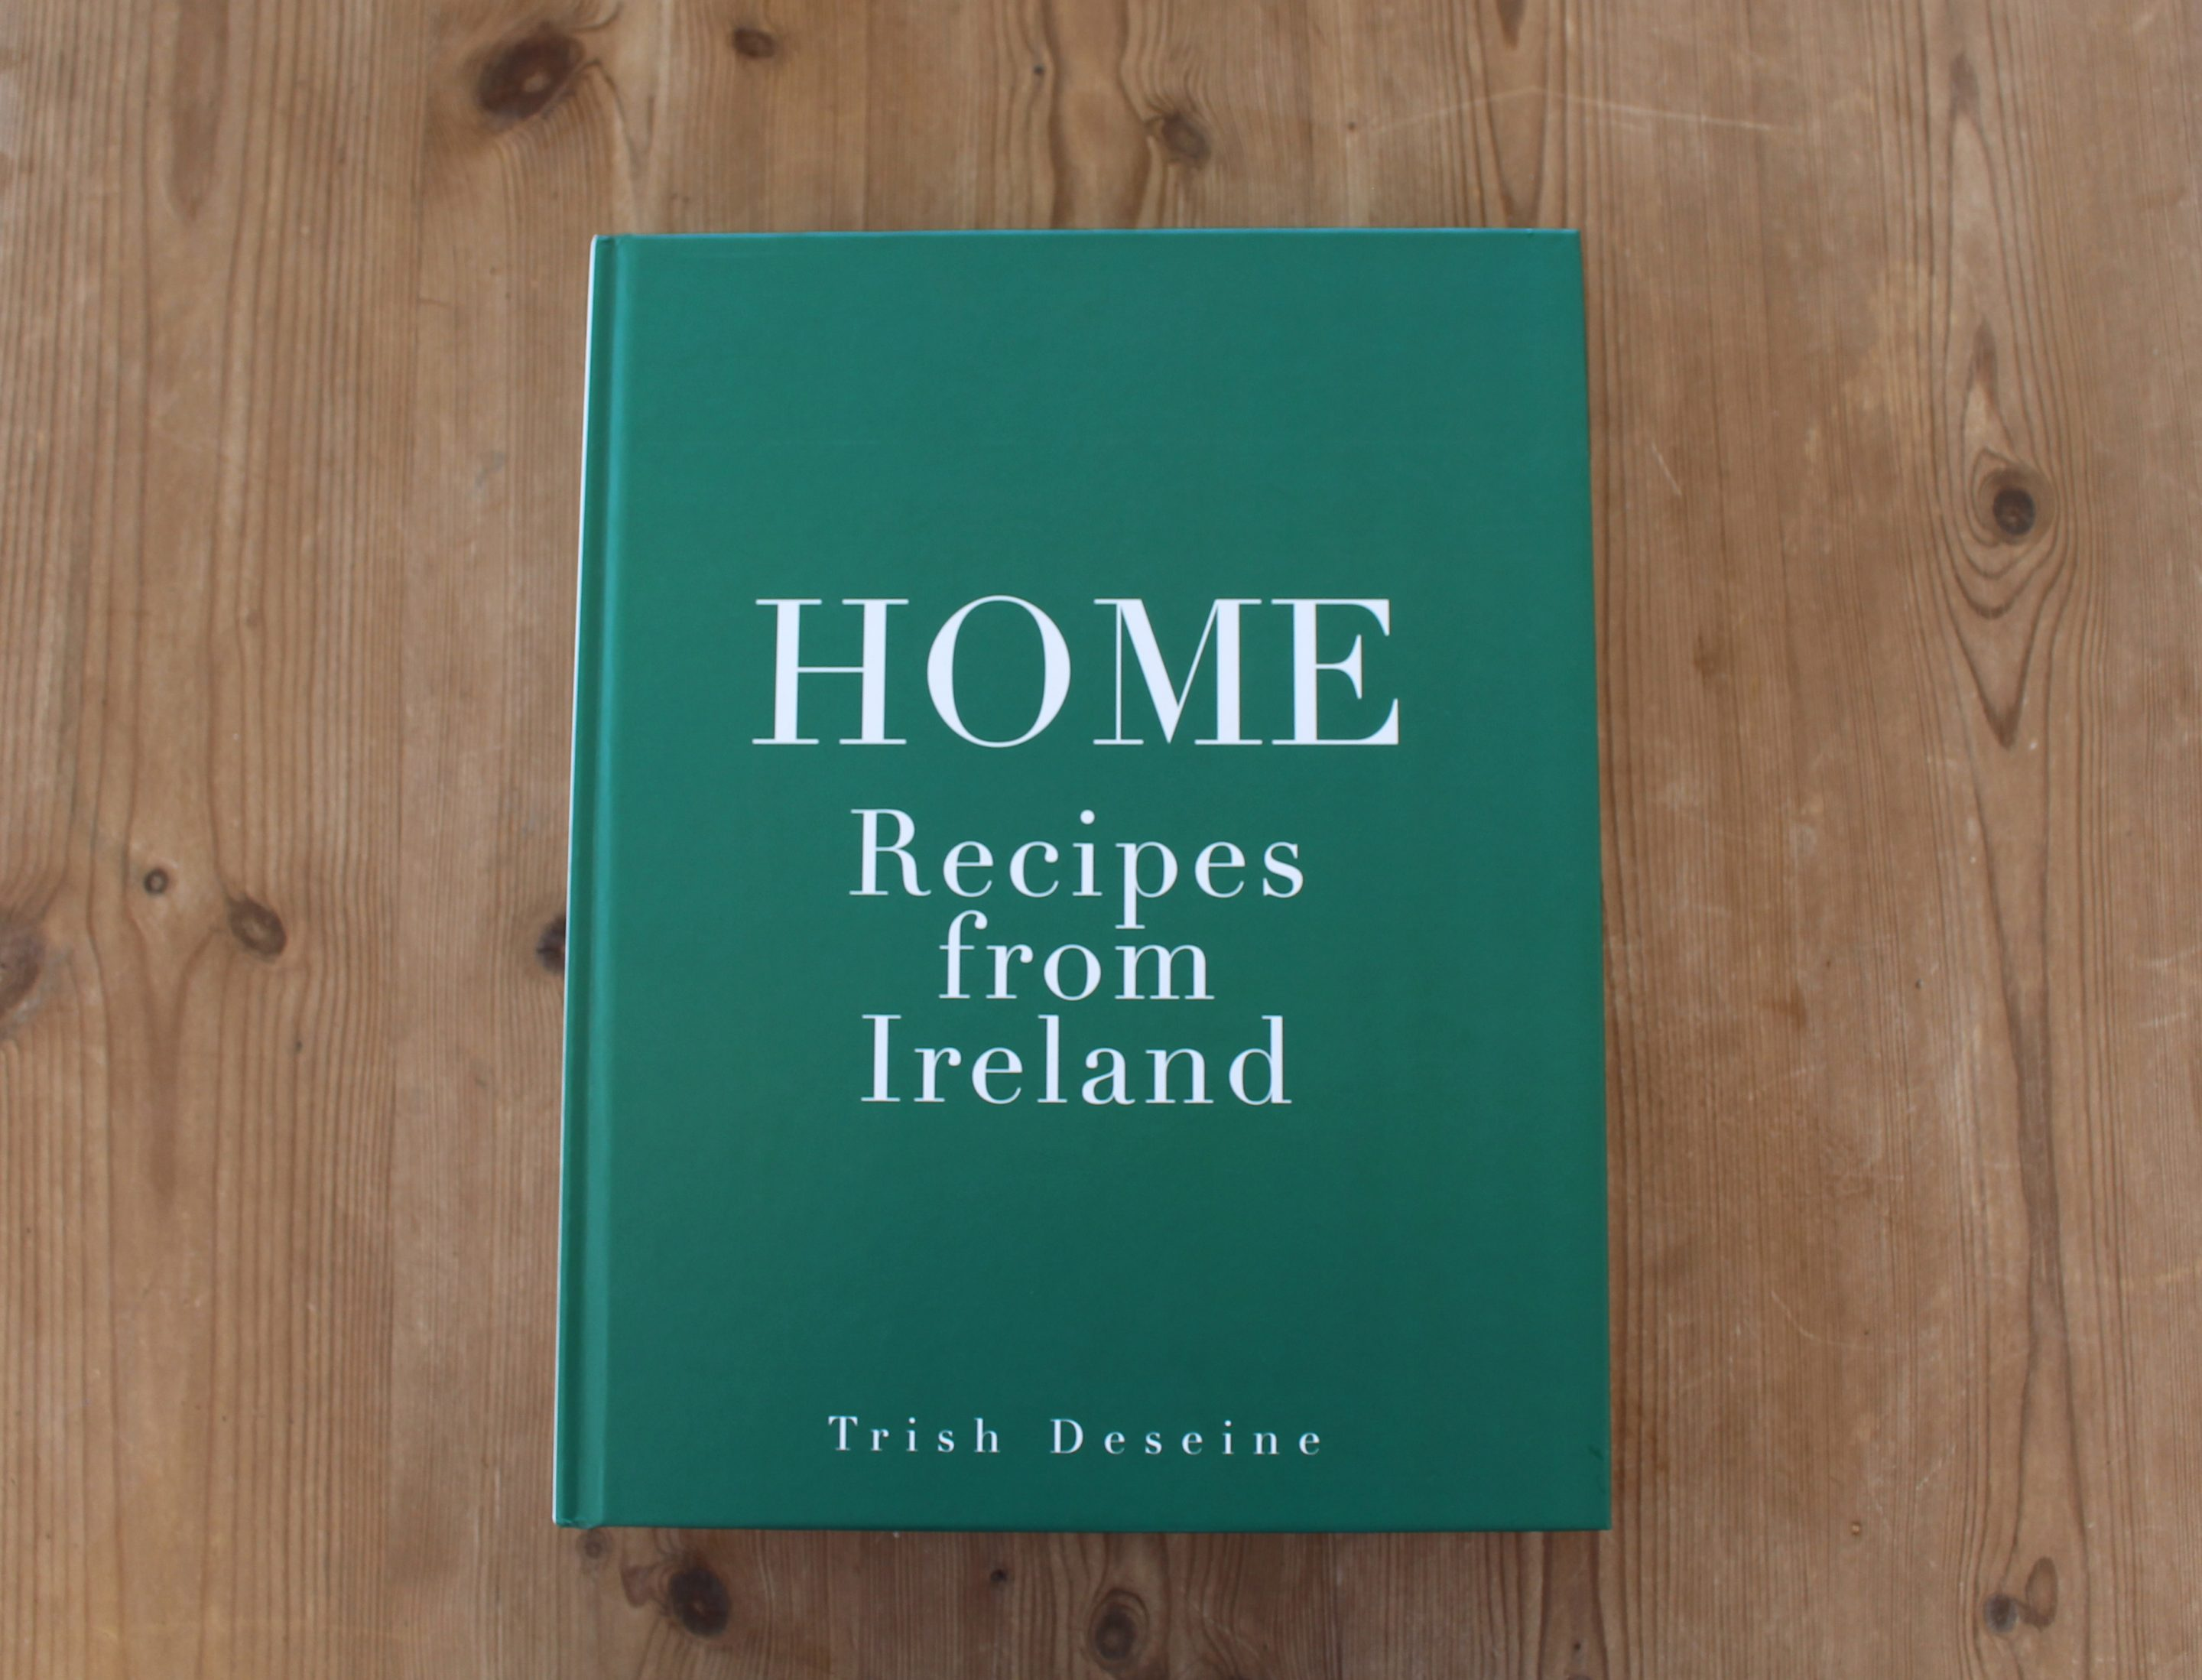 A peak inside Home by Trish Deseine-featuring Broughgammon!